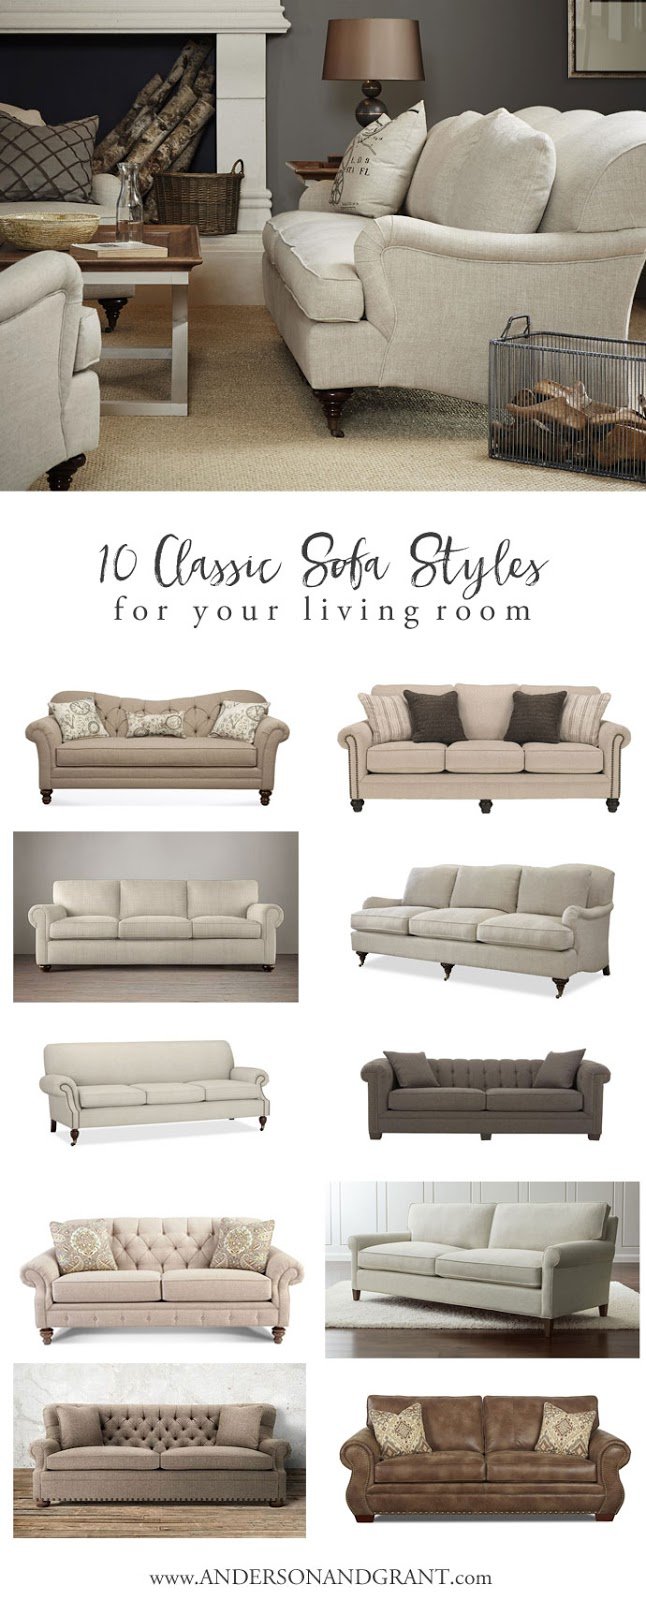 anderson grant 10 Classic Sofa Styles for Your Living Room